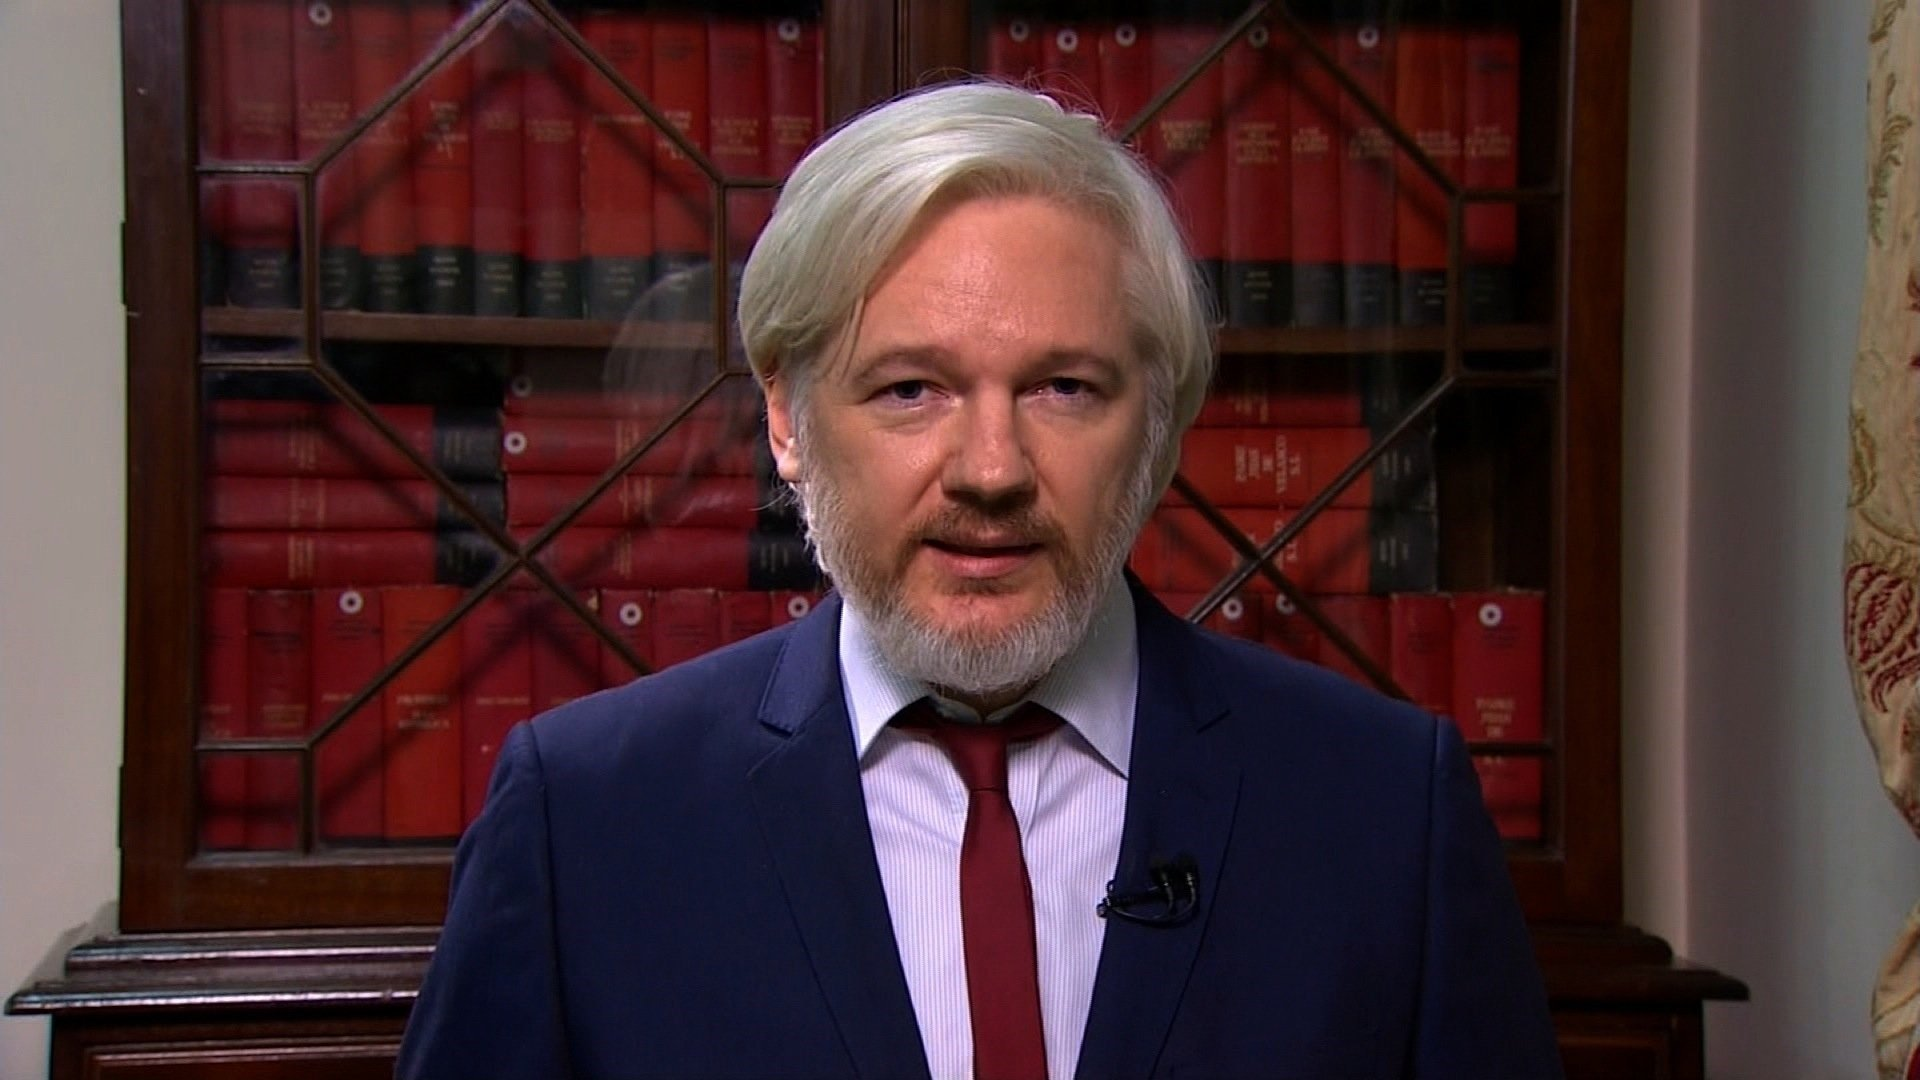 File- Sweden is dropping its investigation into WikiLeaks founder Julian Assange on rape allegations, according to a prosecution statement released Friday, May 19, 2017.